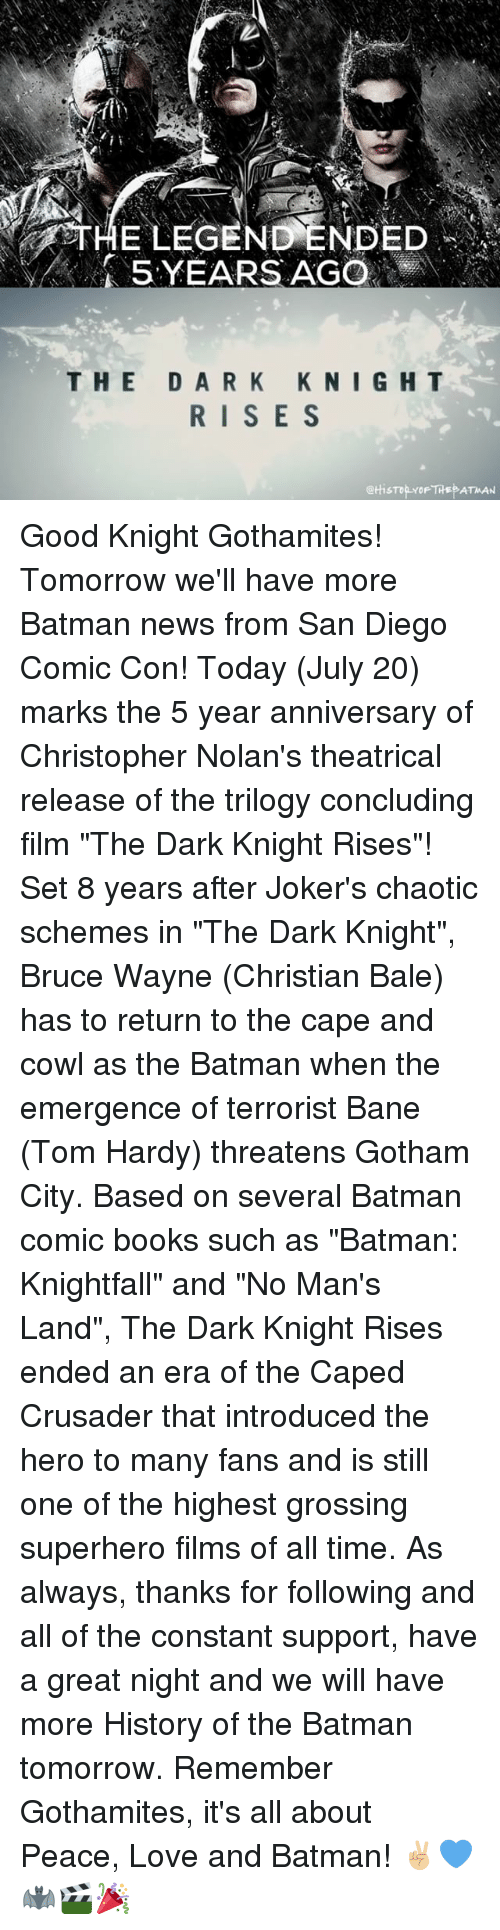 """Caping: 5 YEARS AGO  THE DARK KNIGHT  RISE S  @HisTOYOF THEP ATMAN Good Knight Gothamites! Tomorrow we'll have more Batman news from San Diego Comic Con! Today (July 20) marks the 5 year anniversary of Christopher Nolan's theatrical release of the trilogy concluding film """"The Dark Knight Rises""""! Set 8 years after Joker's chaotic schemes in """"The Dark Knight"""", Bruce Wayne (Christian Bale) has to return to the cape and cowl as the Batman when the emergence of terrorist Bane (Tom Hardy) threatens Gotham City. Based on several Batman comic books such as """"Batman: Knightfall"""" and """"No Man's Land"""", The Dark Knight Rises ended an era of the Caped Crusader that introduced the hero to many fans and is still one of the highest grossing superhero films of all time. As always, thanks for following and all of the constant support, have a great night and we will have more History of the Batman tomorrow. Remember Gothamites, it's all about Peace, Love and Batman! ✌🏼💙🦇🎬🎉"""